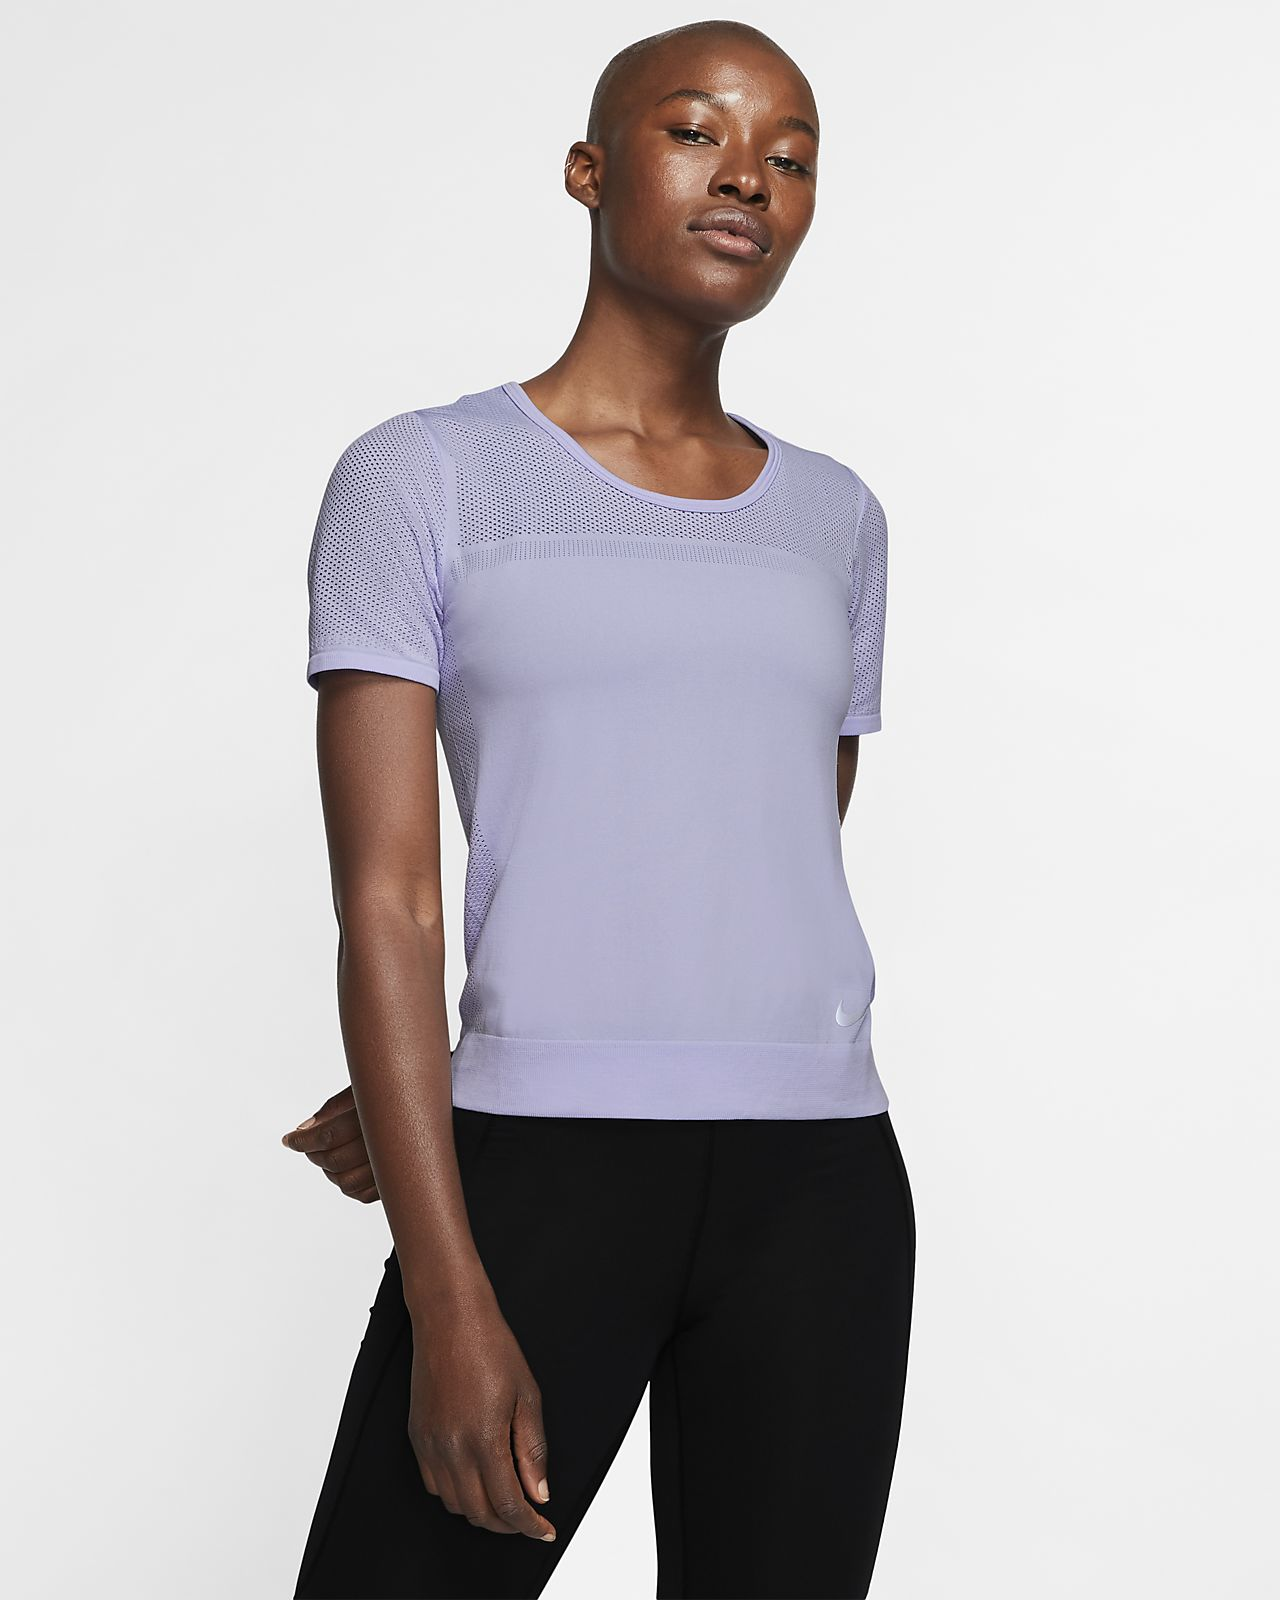 Nike Infinite Women's Short-Sleeve Running Top